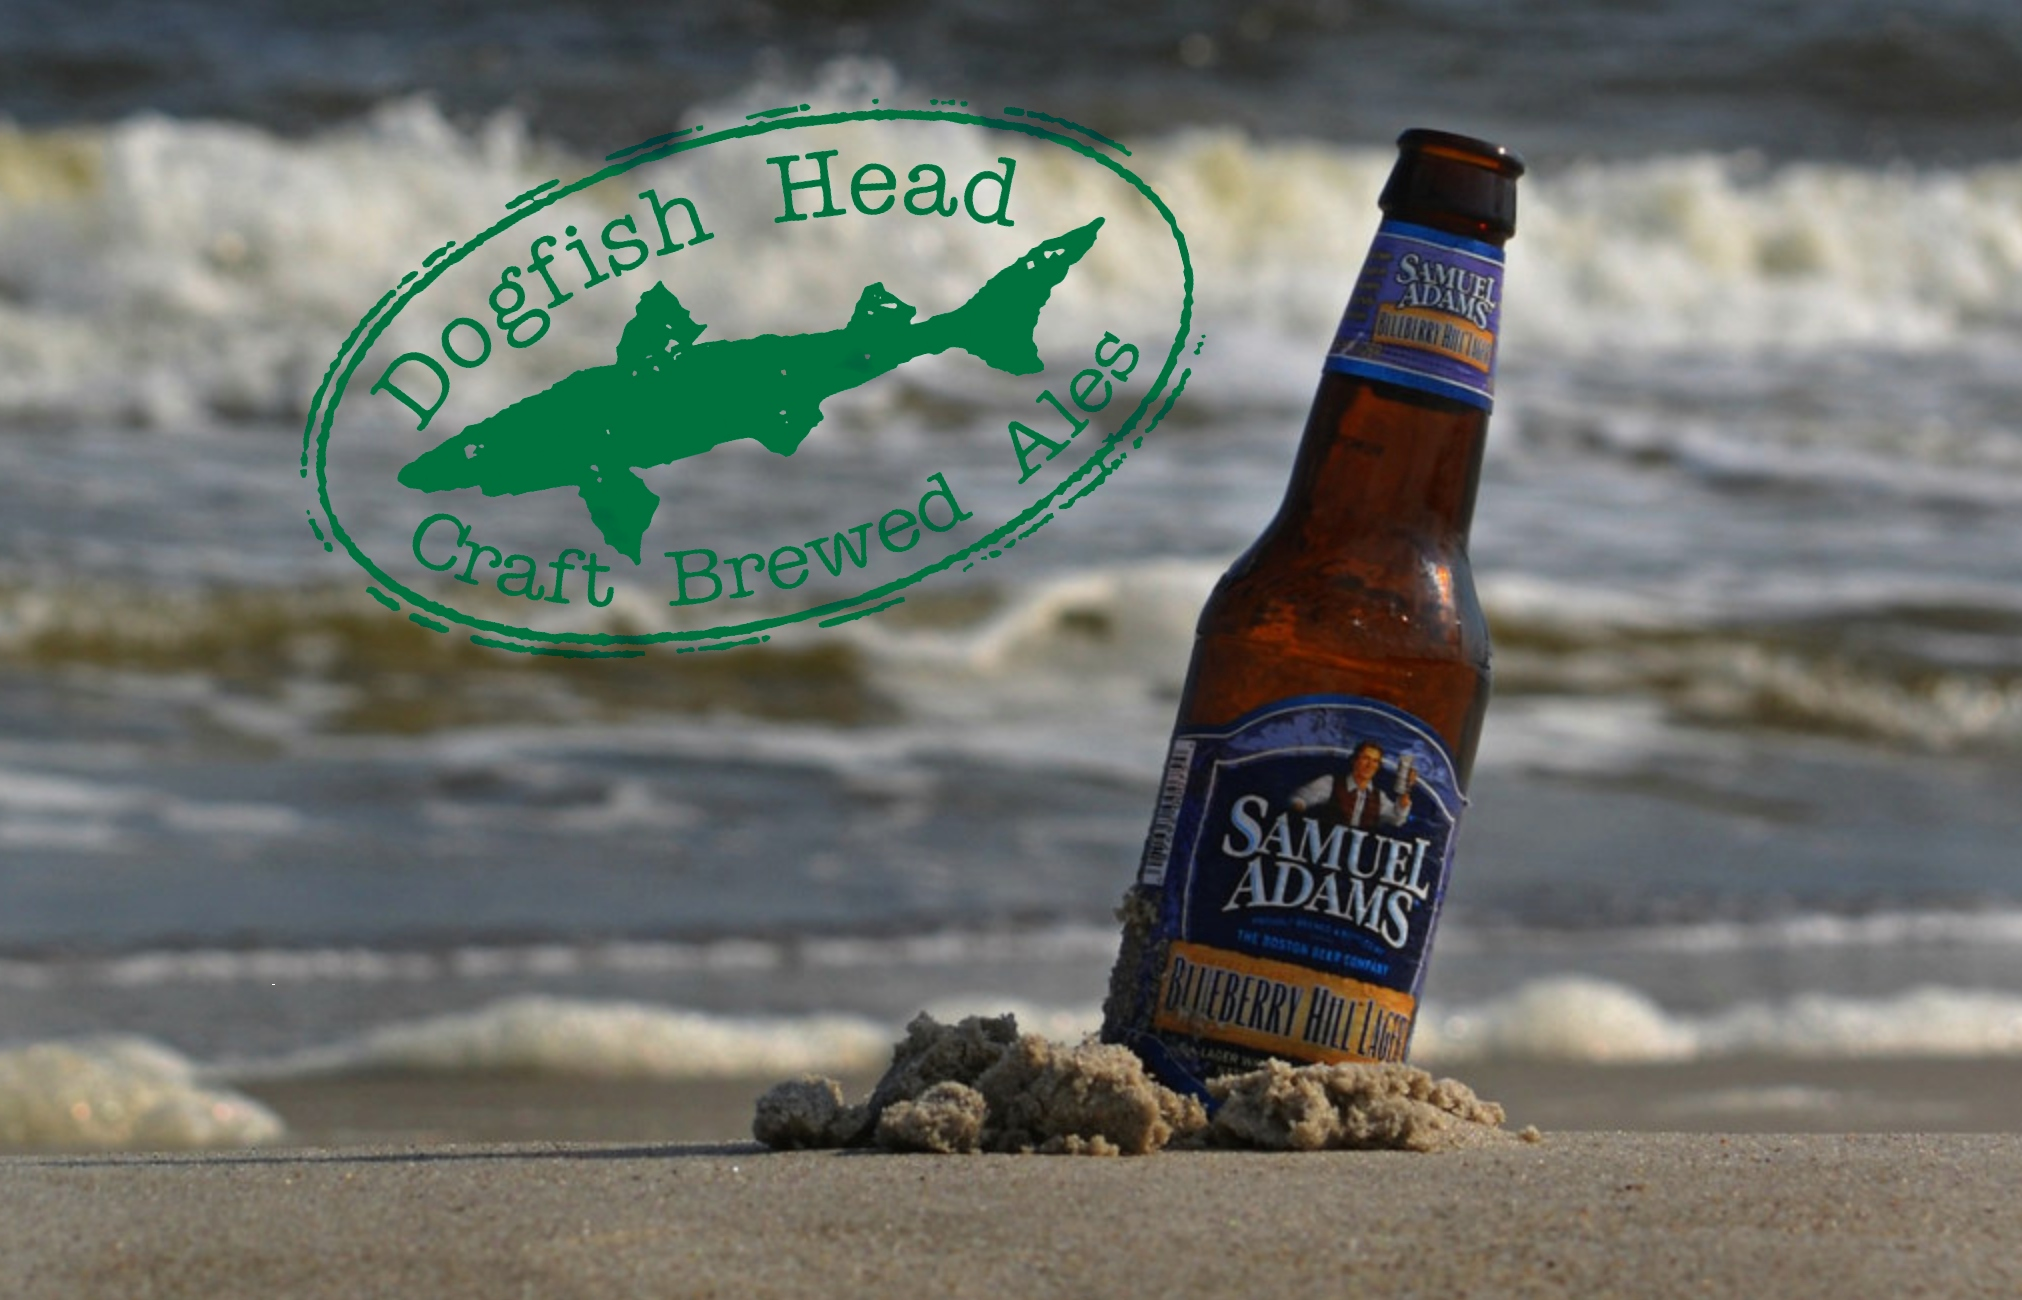 XL Craft Beer: Dogfish Head Merges With Boston Beer Co.